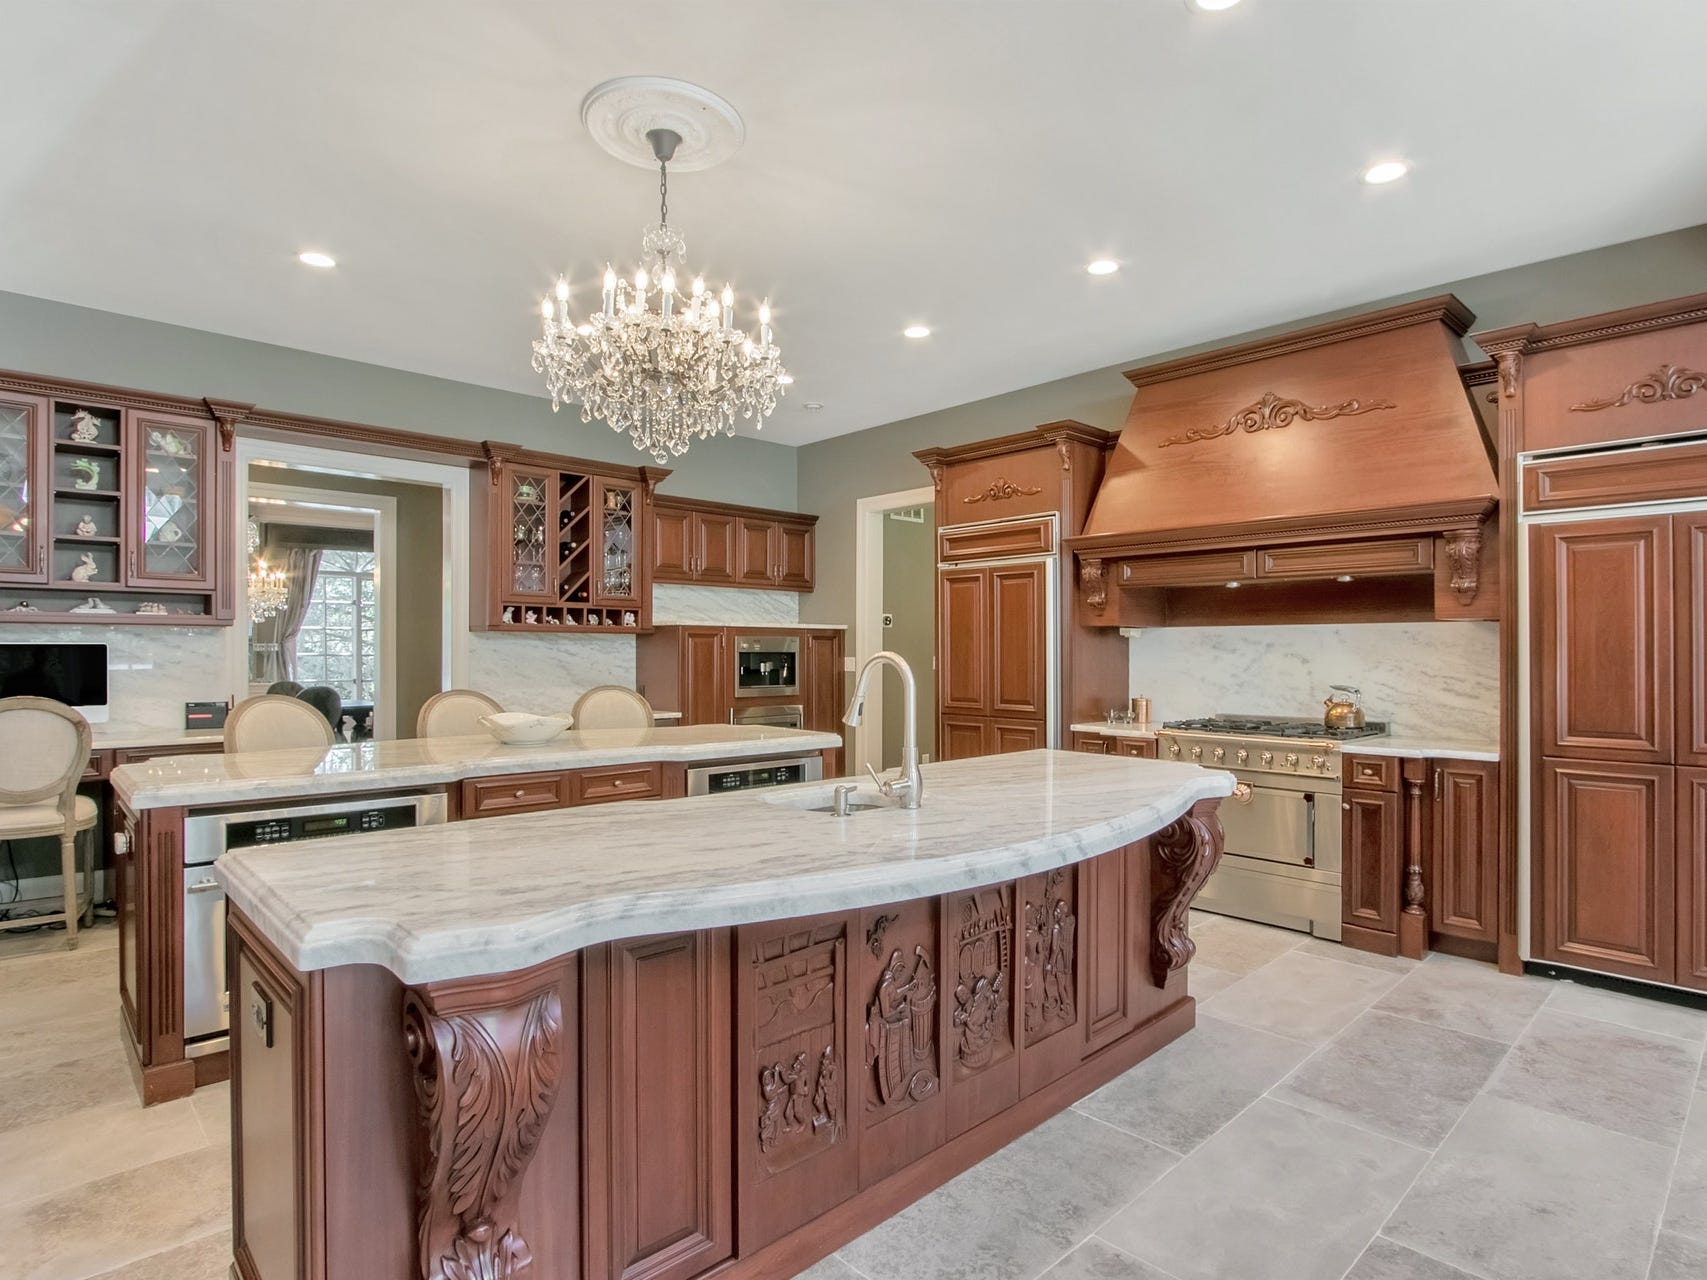 The gourmet kitchen has two oversized Carrera marble islands and a La Cornue cooking stove.